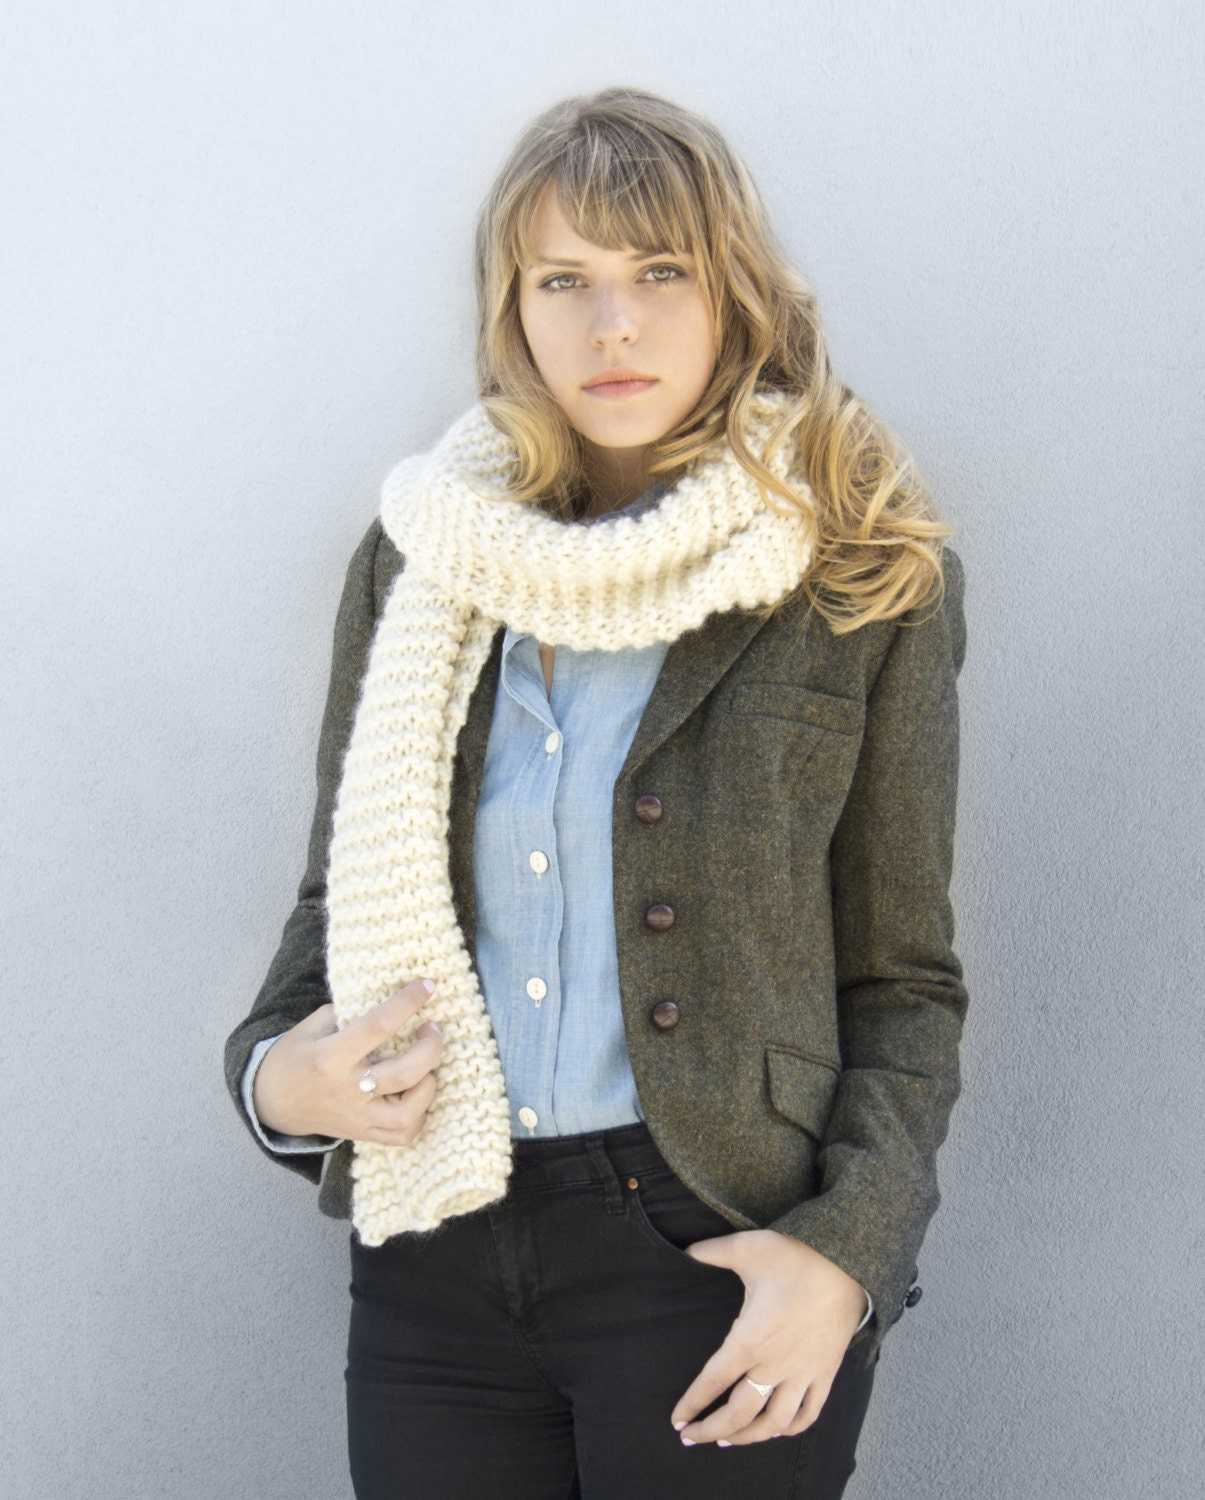 How to Knit a beginner's version of a circle/infinity scarf